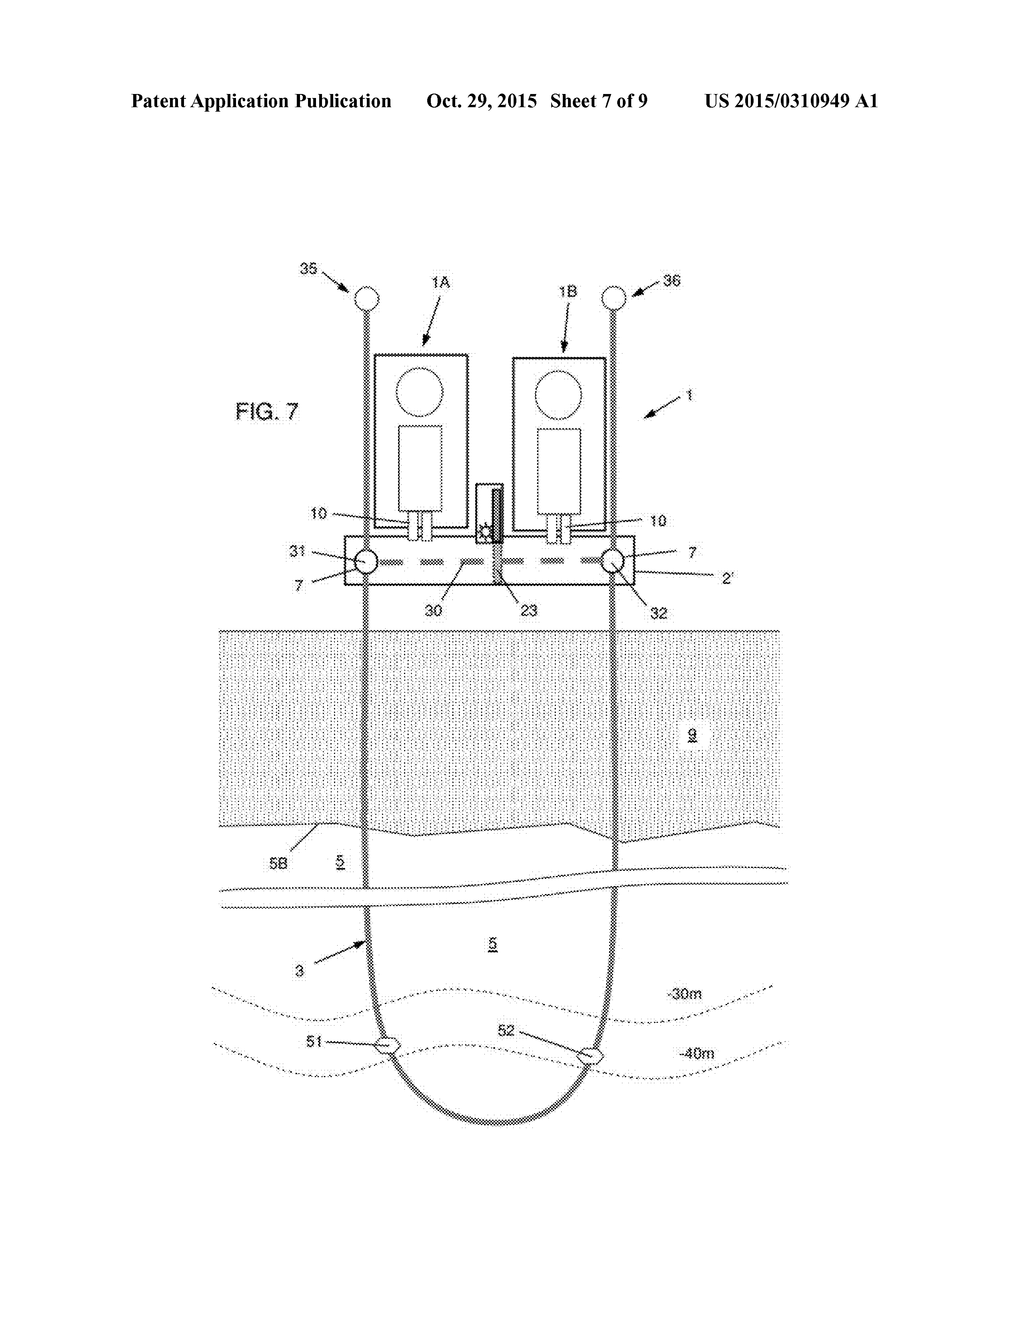 Water Intake Installation For Cooling A Nuclear Power Plant And Circuit Diagram Comprising Such An Schematic Image 08